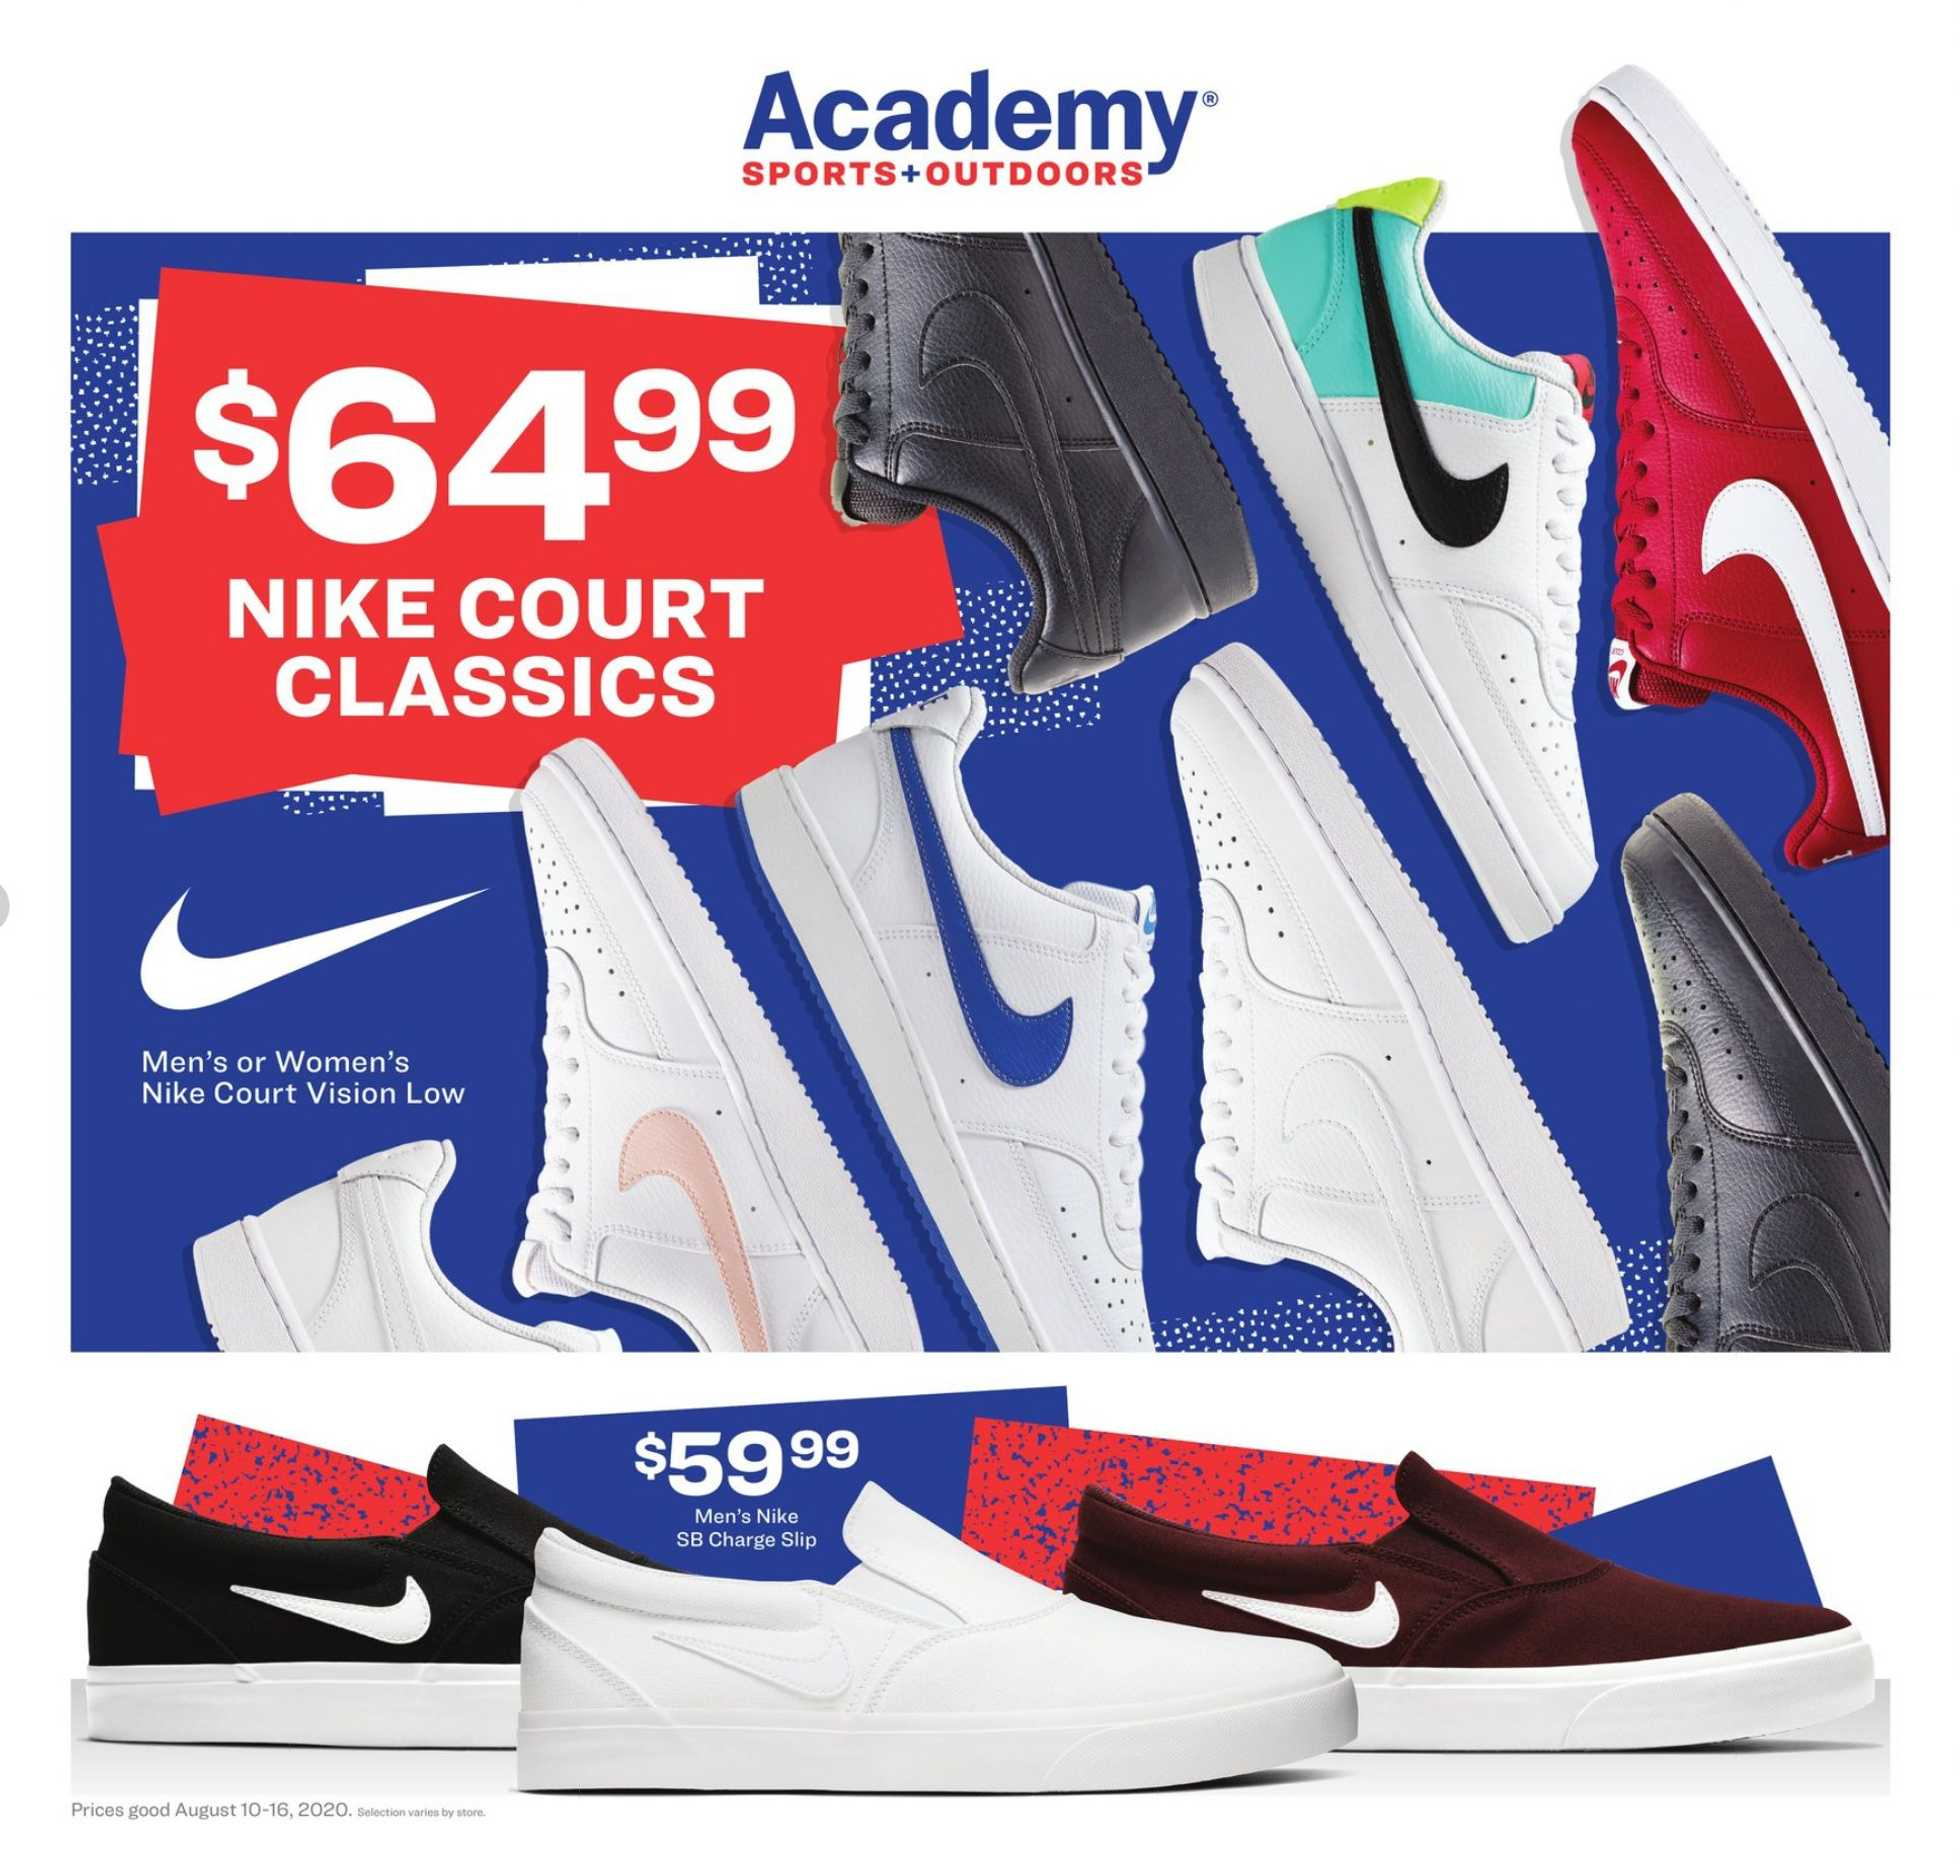 Academy Sports + Outdoors - deals are valid from 08/10/20 to 08/16/20 - page 1.